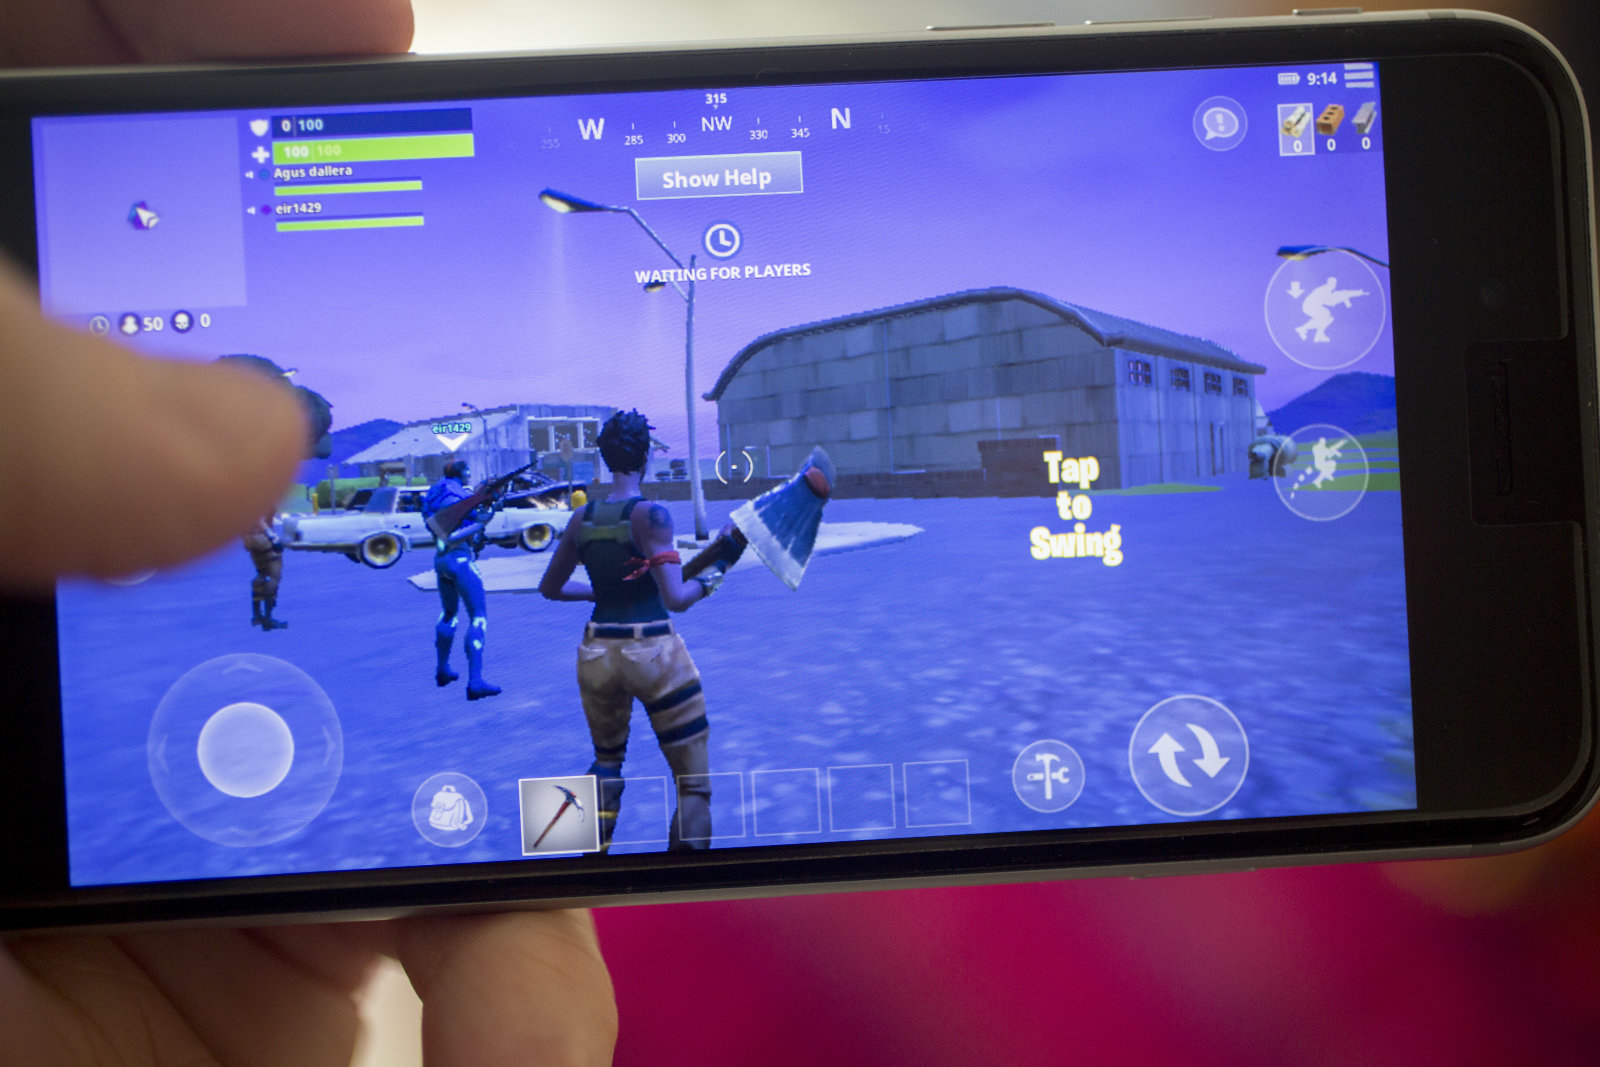 The Epic Games Inc. Fortnite: Battle Royale video game is displayed for a photograph on an Apple Inc. iPhone in Washington, D.C., U.S., on Thursday, May 10, 2018. Fortnite, the hit game that's denting the stock prices of video-game makers after signing up 45 million players, didn't really take off until it became free and a free-for-all. Photographer: Andrew Harrer/Bloomberg via Getty Images